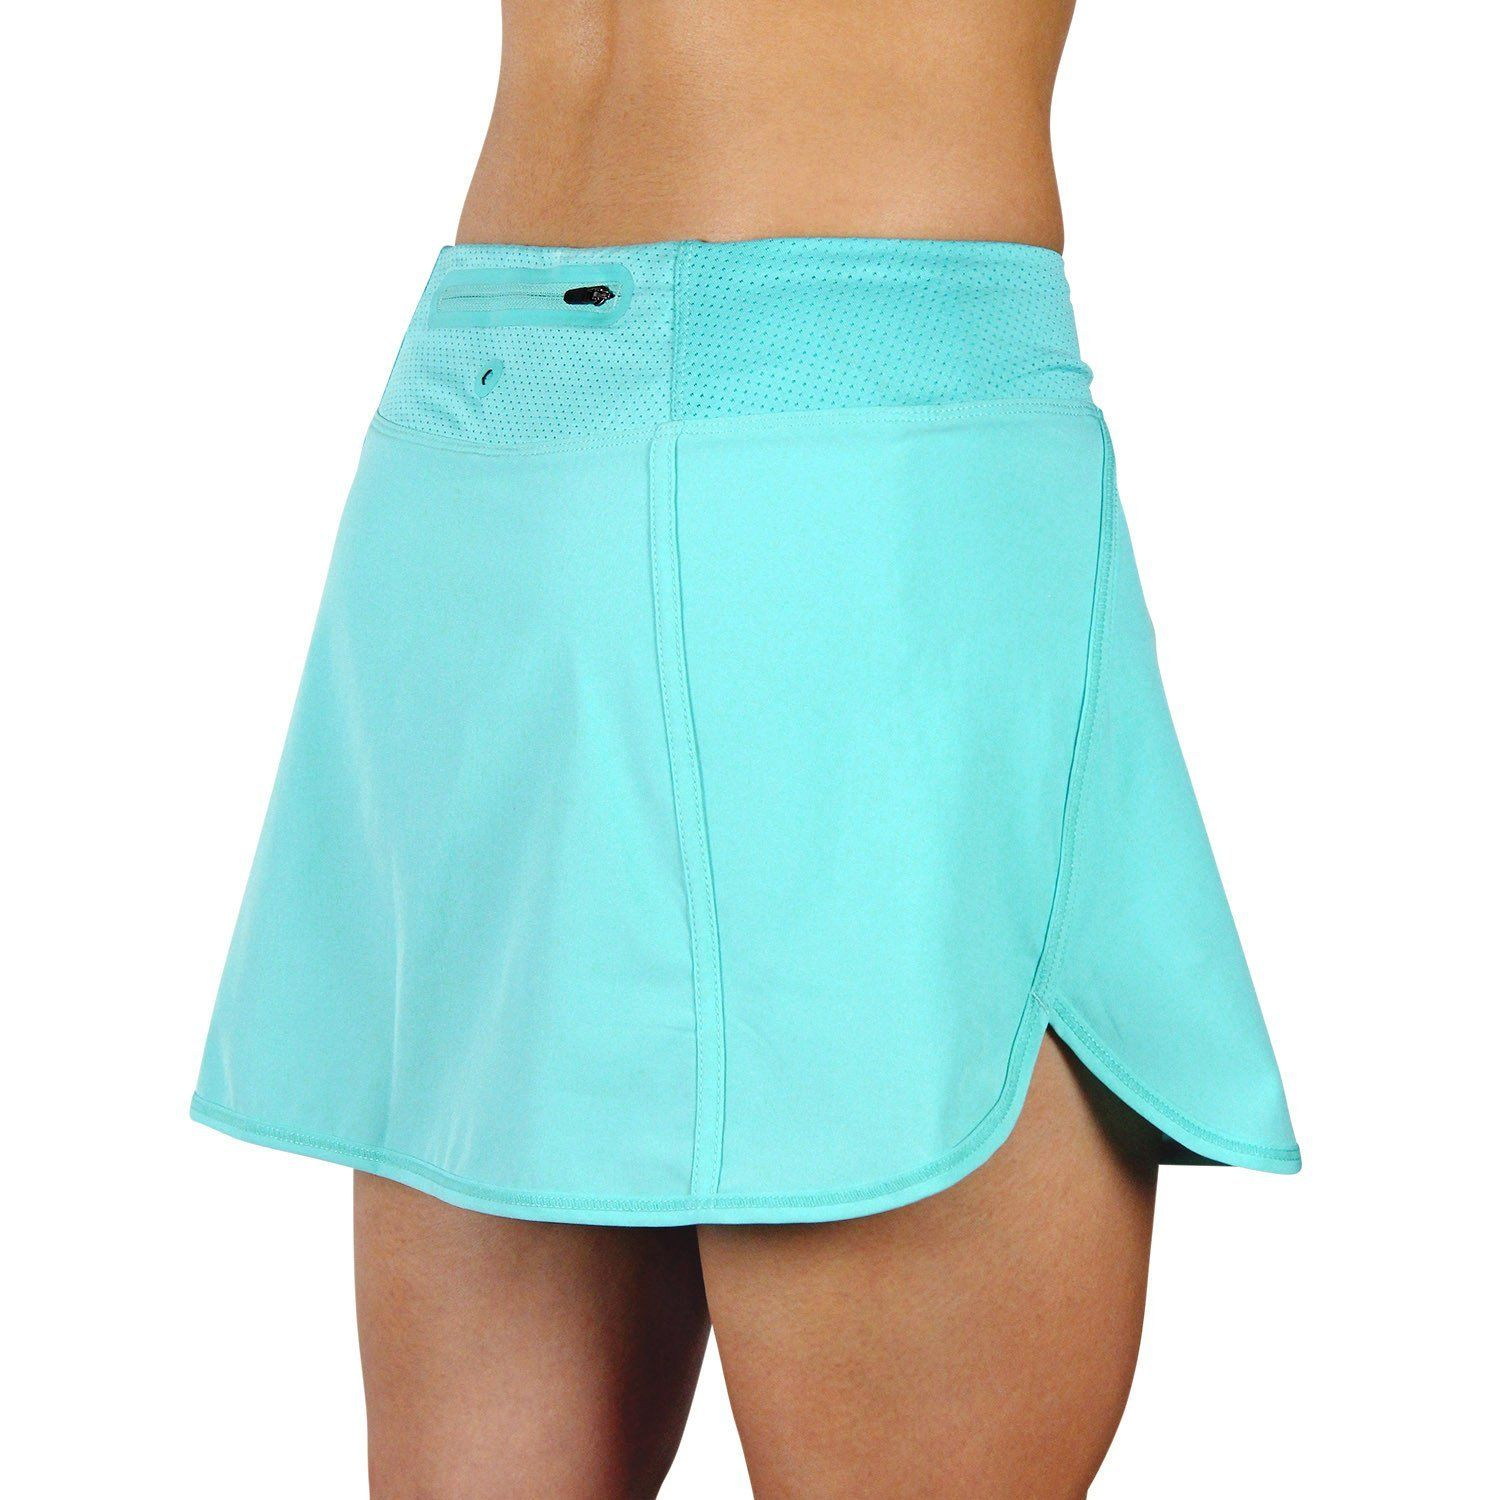 Athletic Skort with Pockets for Tennis